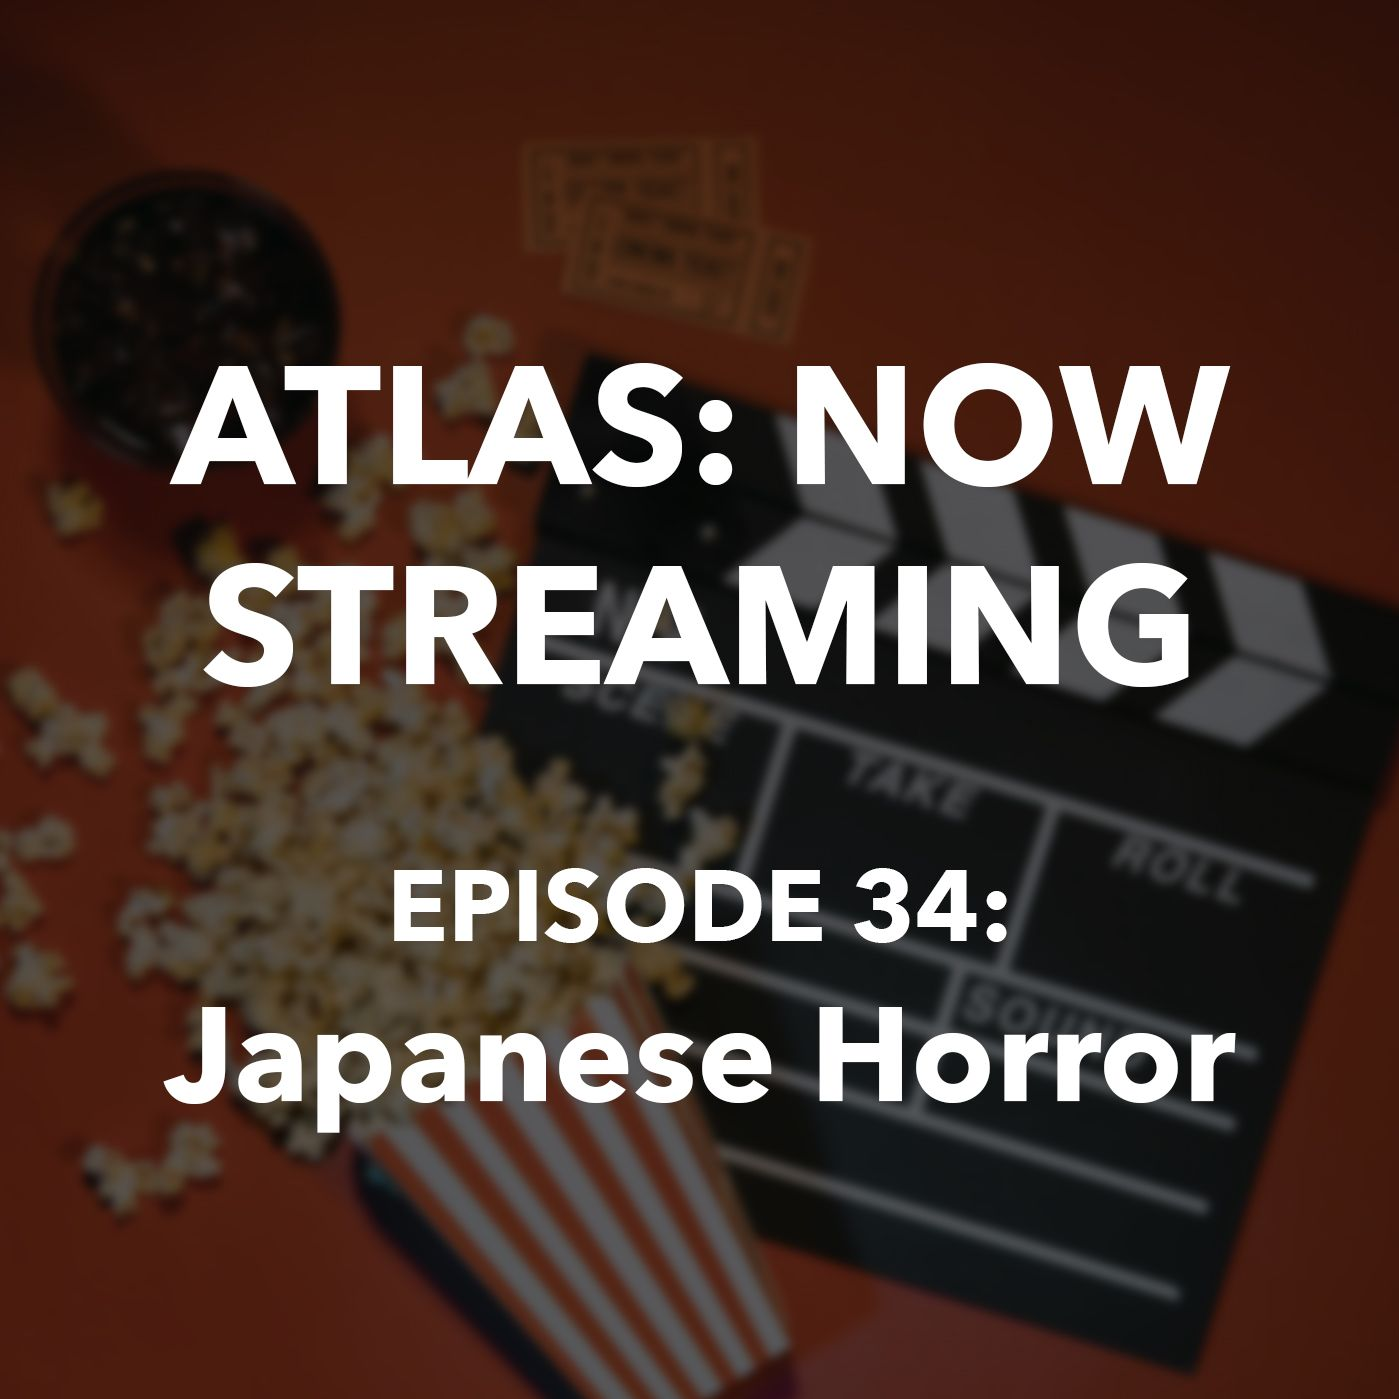 Japanese Horror - Atlas: Now Streaming Episode 34